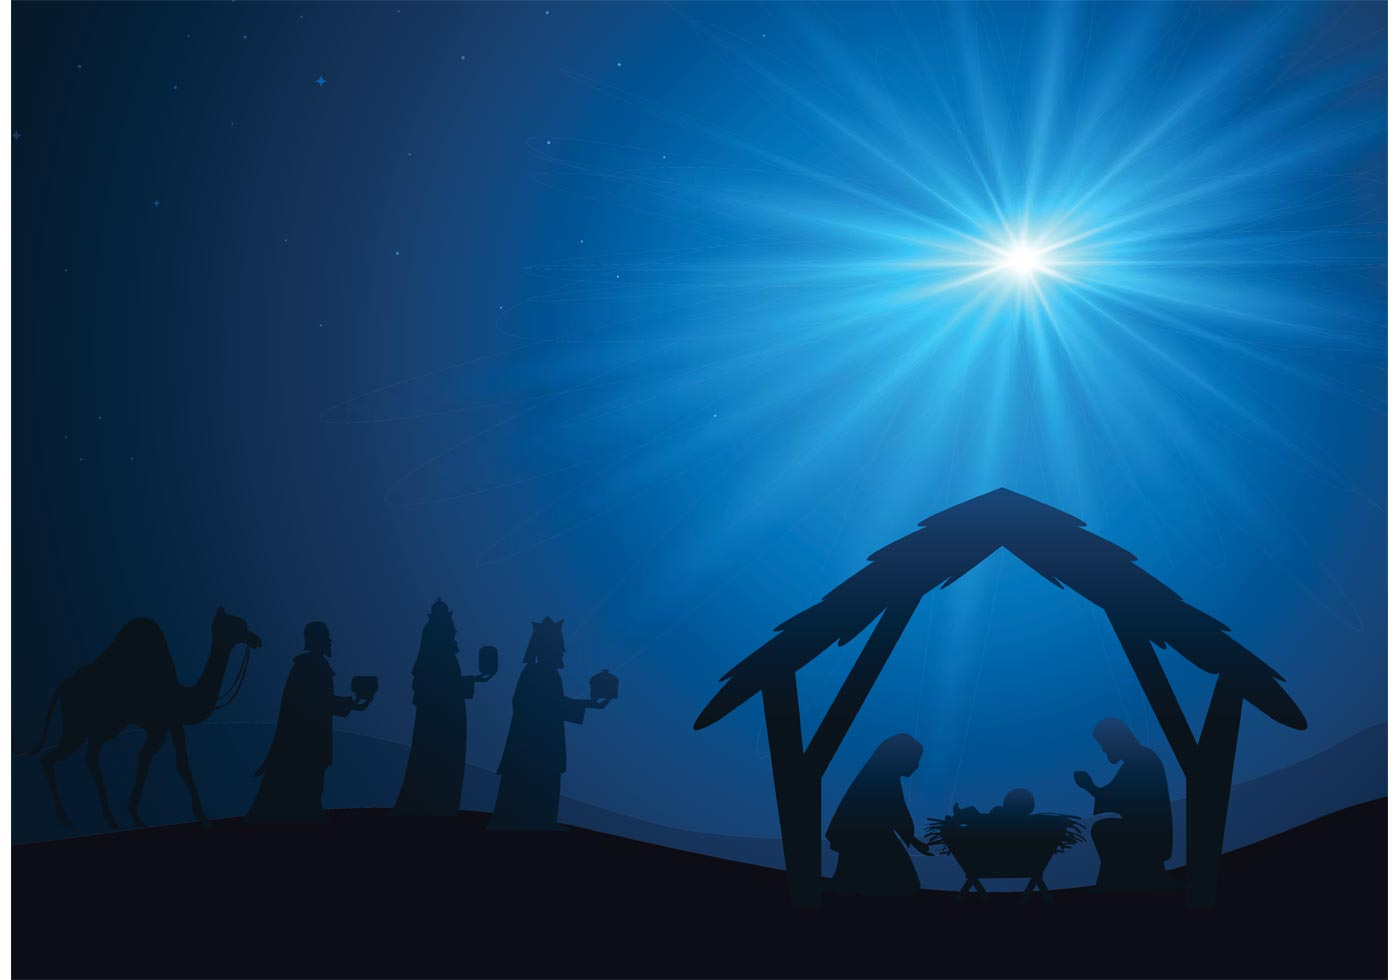 Free Manger Scene Vector Background - Download Free Vector Art, Stock ...